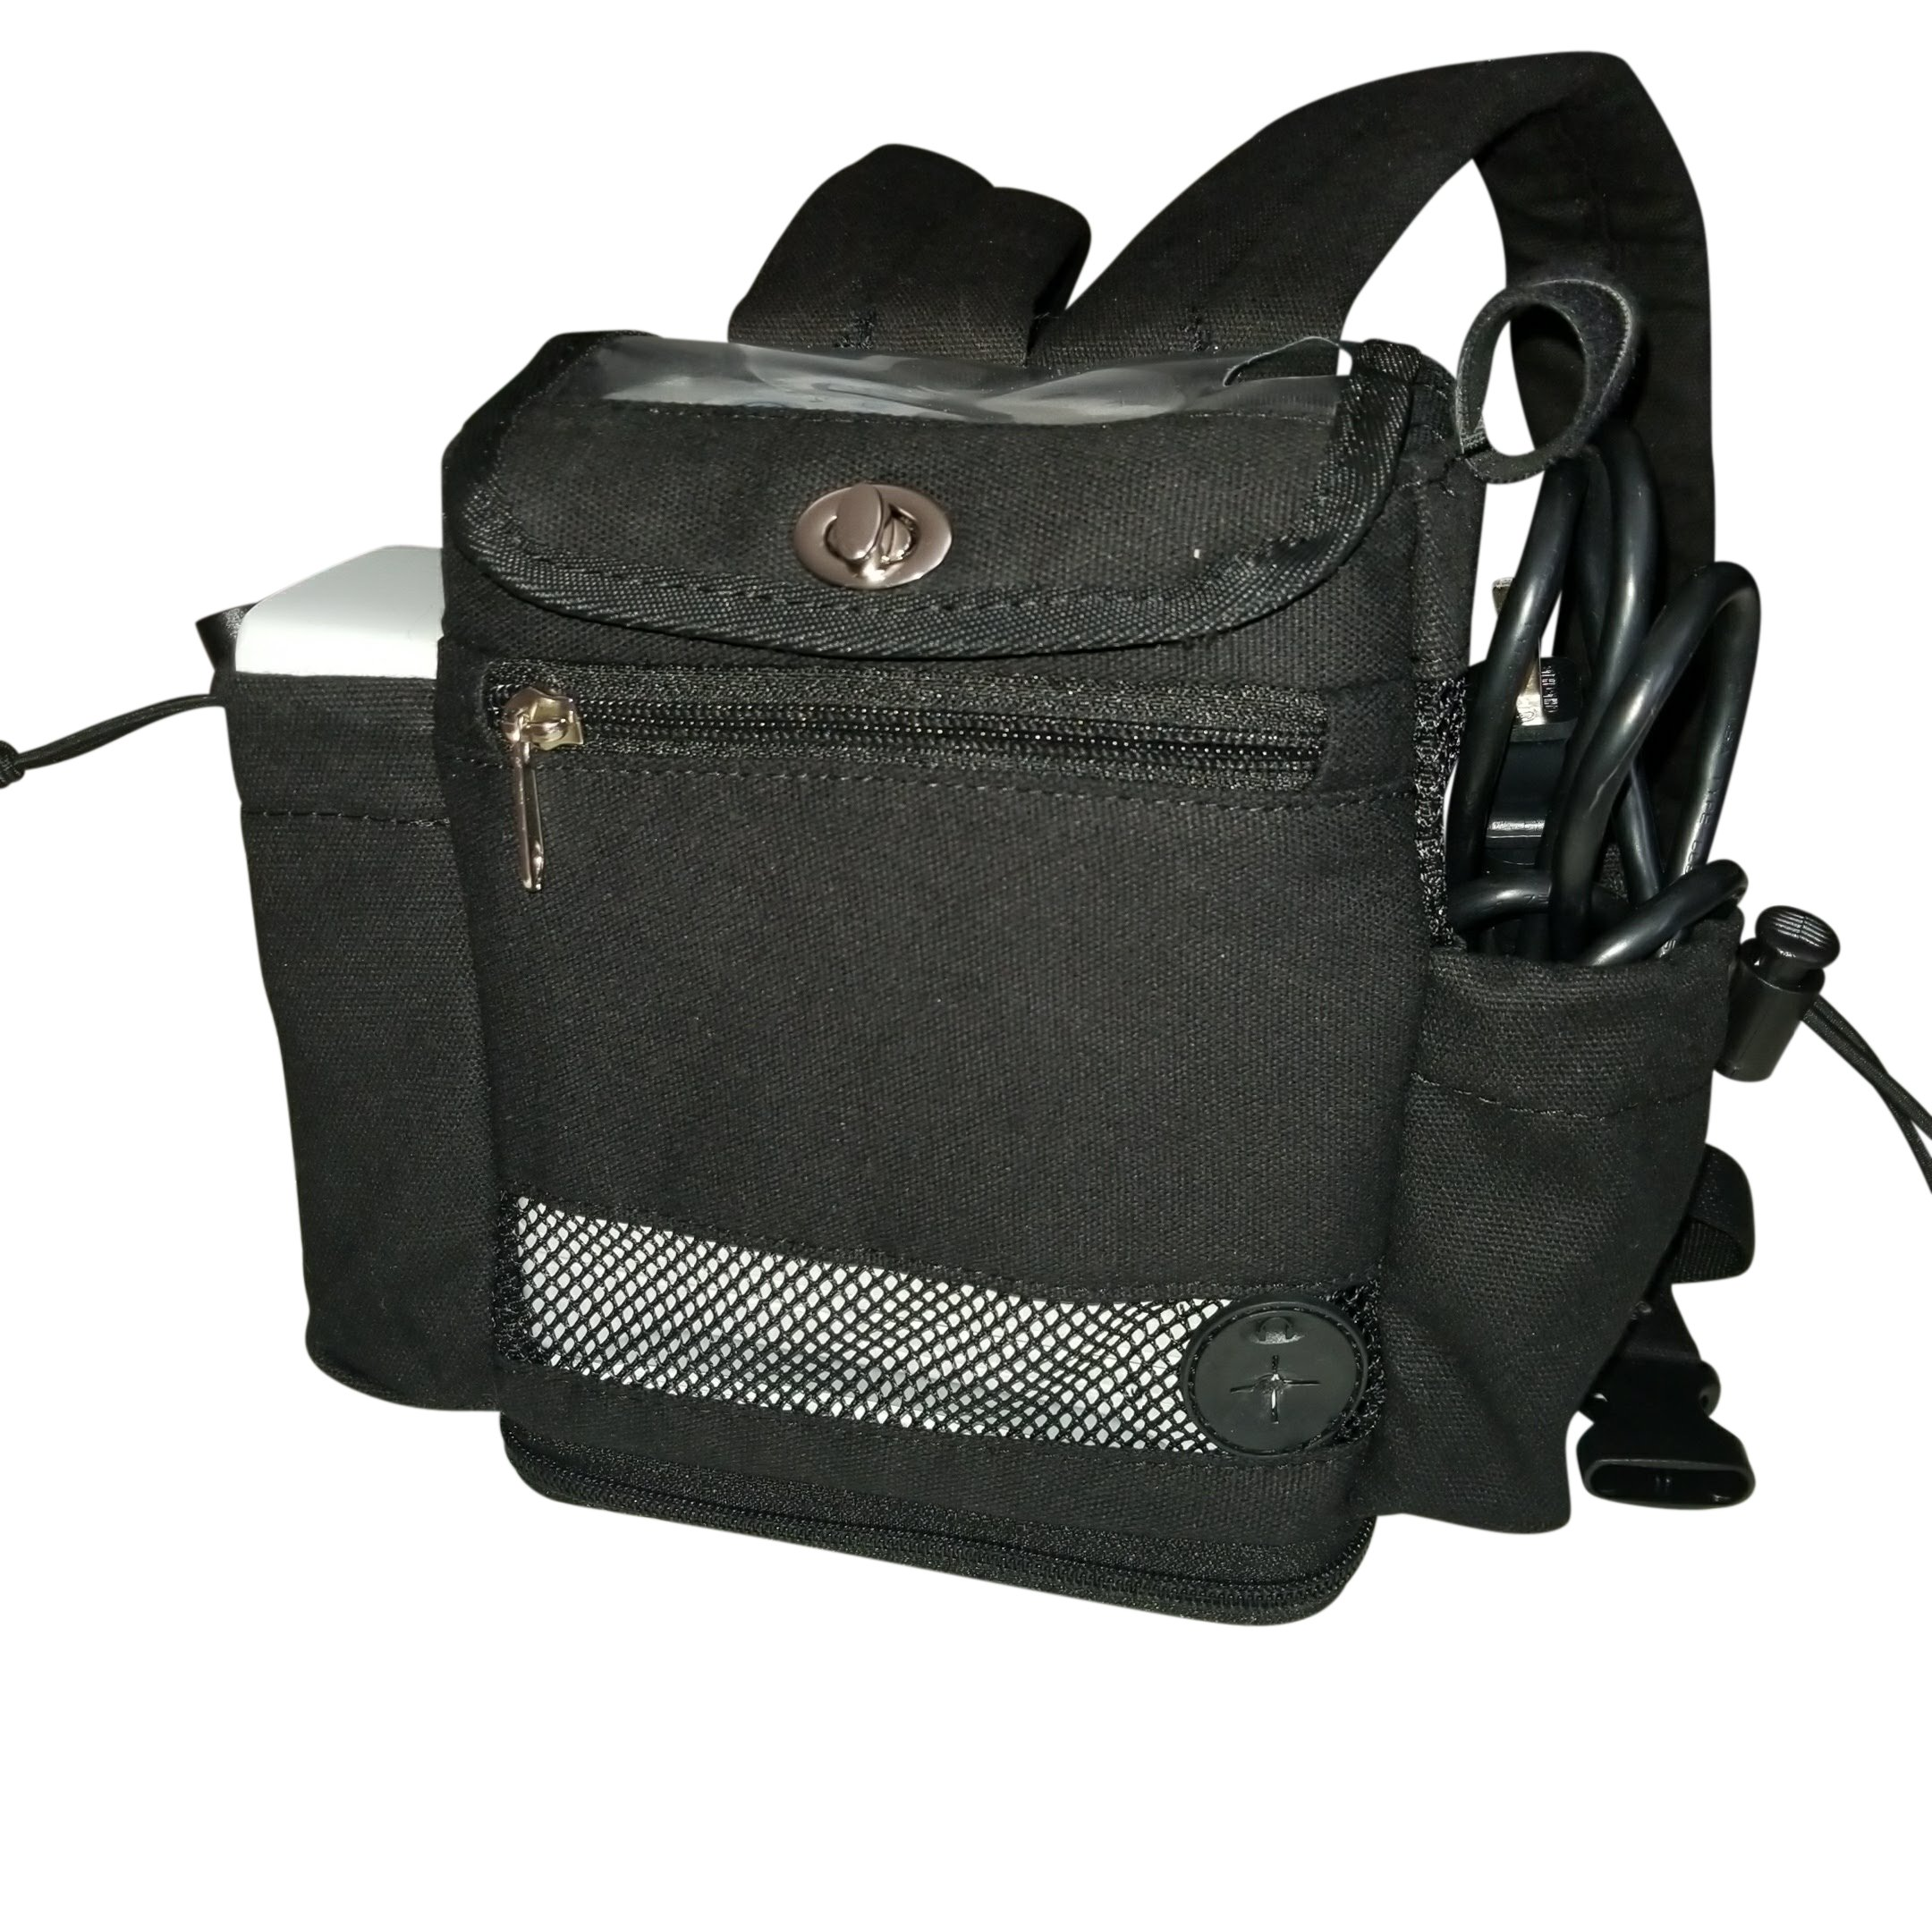 Backpack for Inogen One G4 & Oxygo Fit with Room for Extra Battery & Charging Cords/Inogen one G4